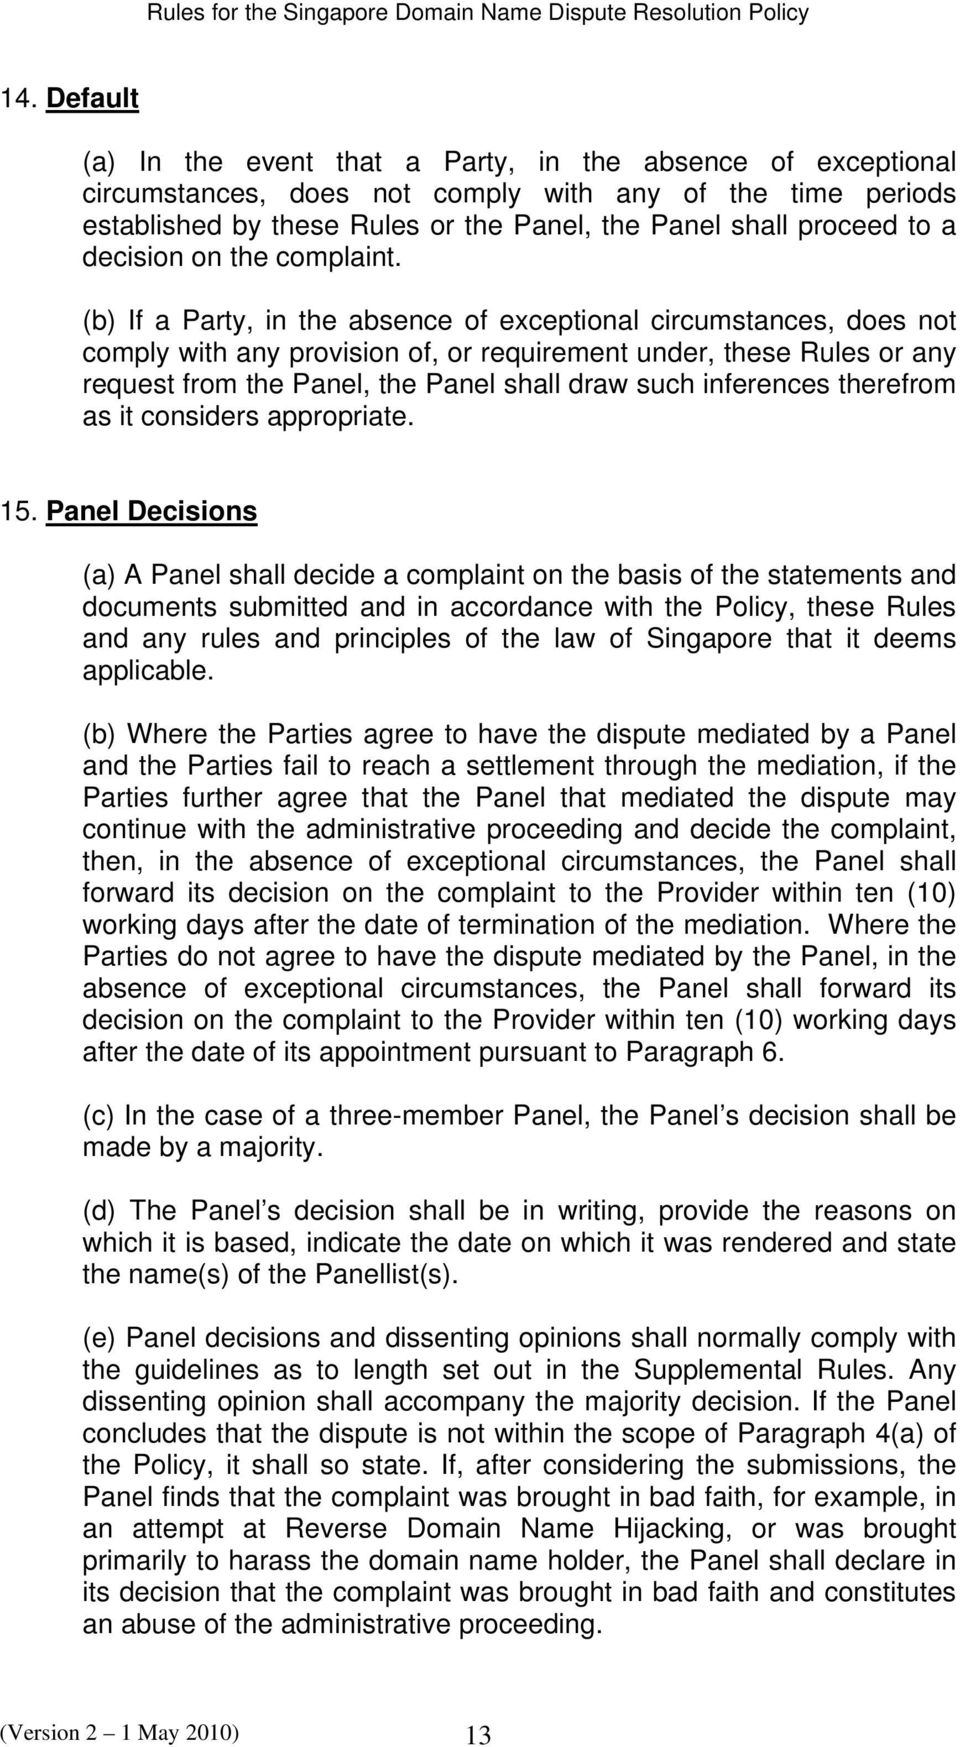 (b) If a Party, in the absence of exceptional circumstances, does not comply with any provision of, or requirement under, these Rules or any request from the Panel, the Panel shall draw such